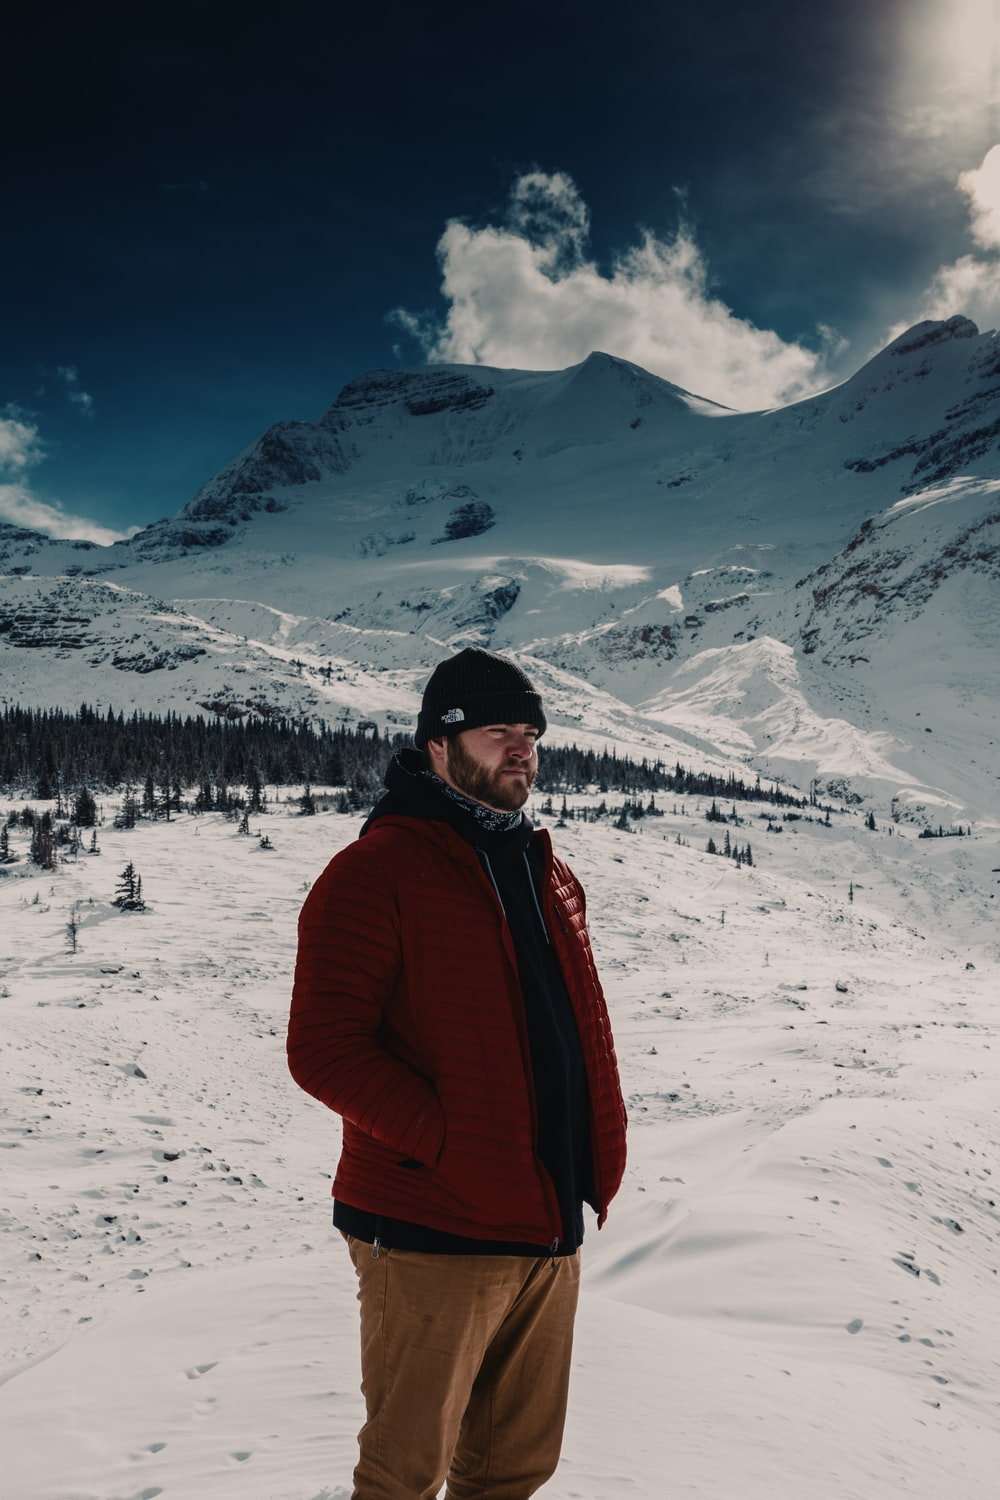 man in red jacket standing on snow covered ground